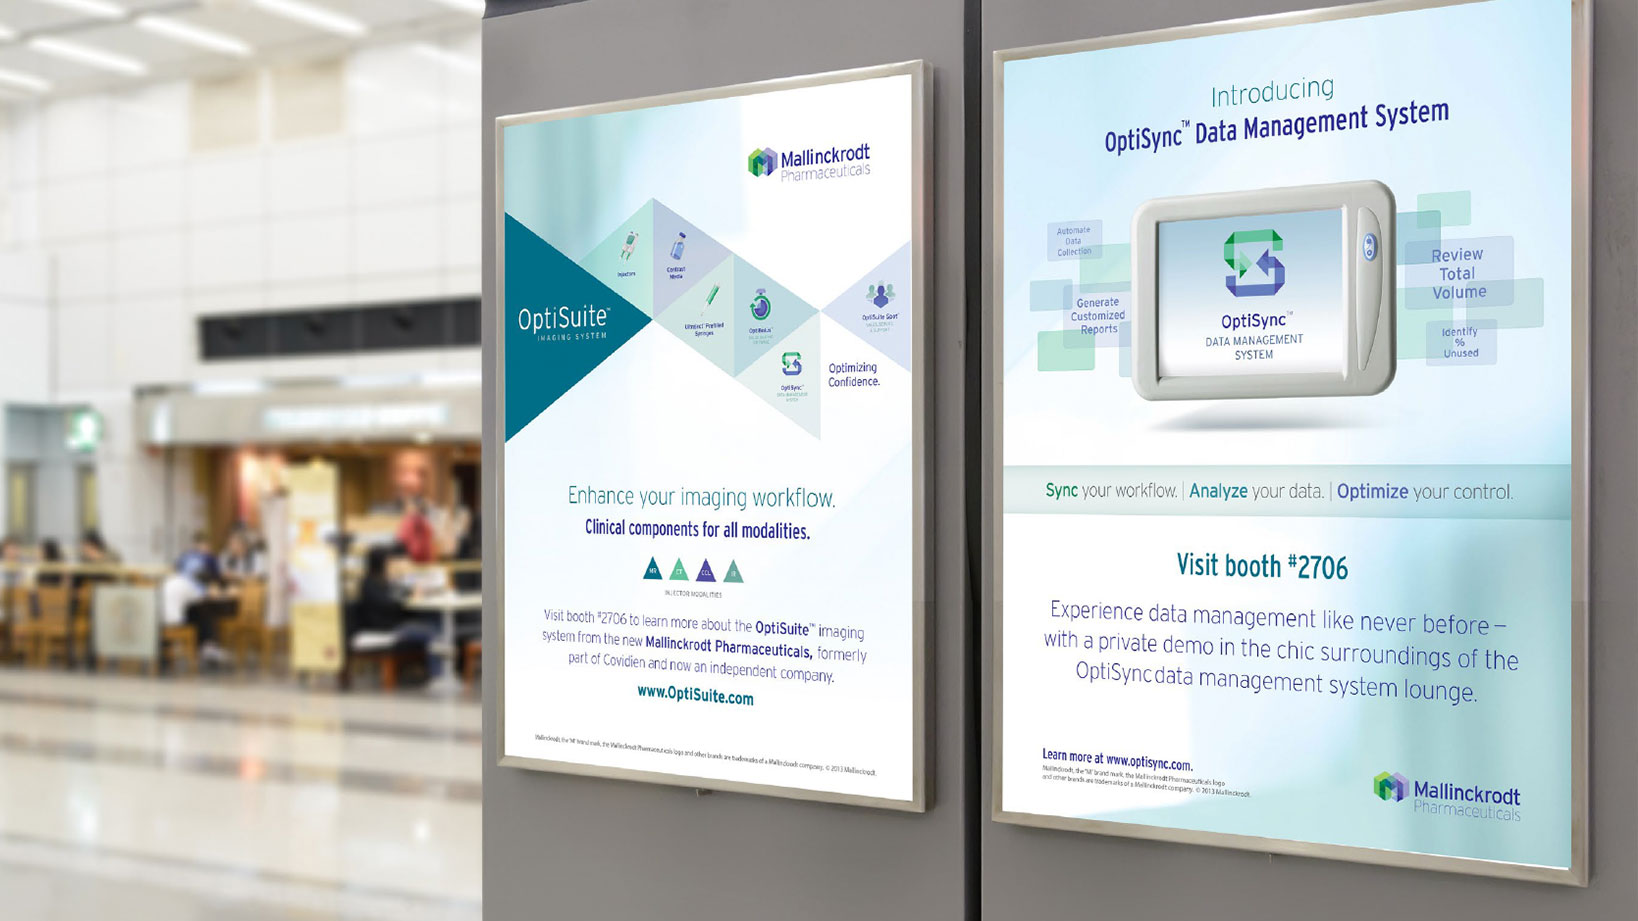 Mallinckrodt Print and Digital Signage and Advertising